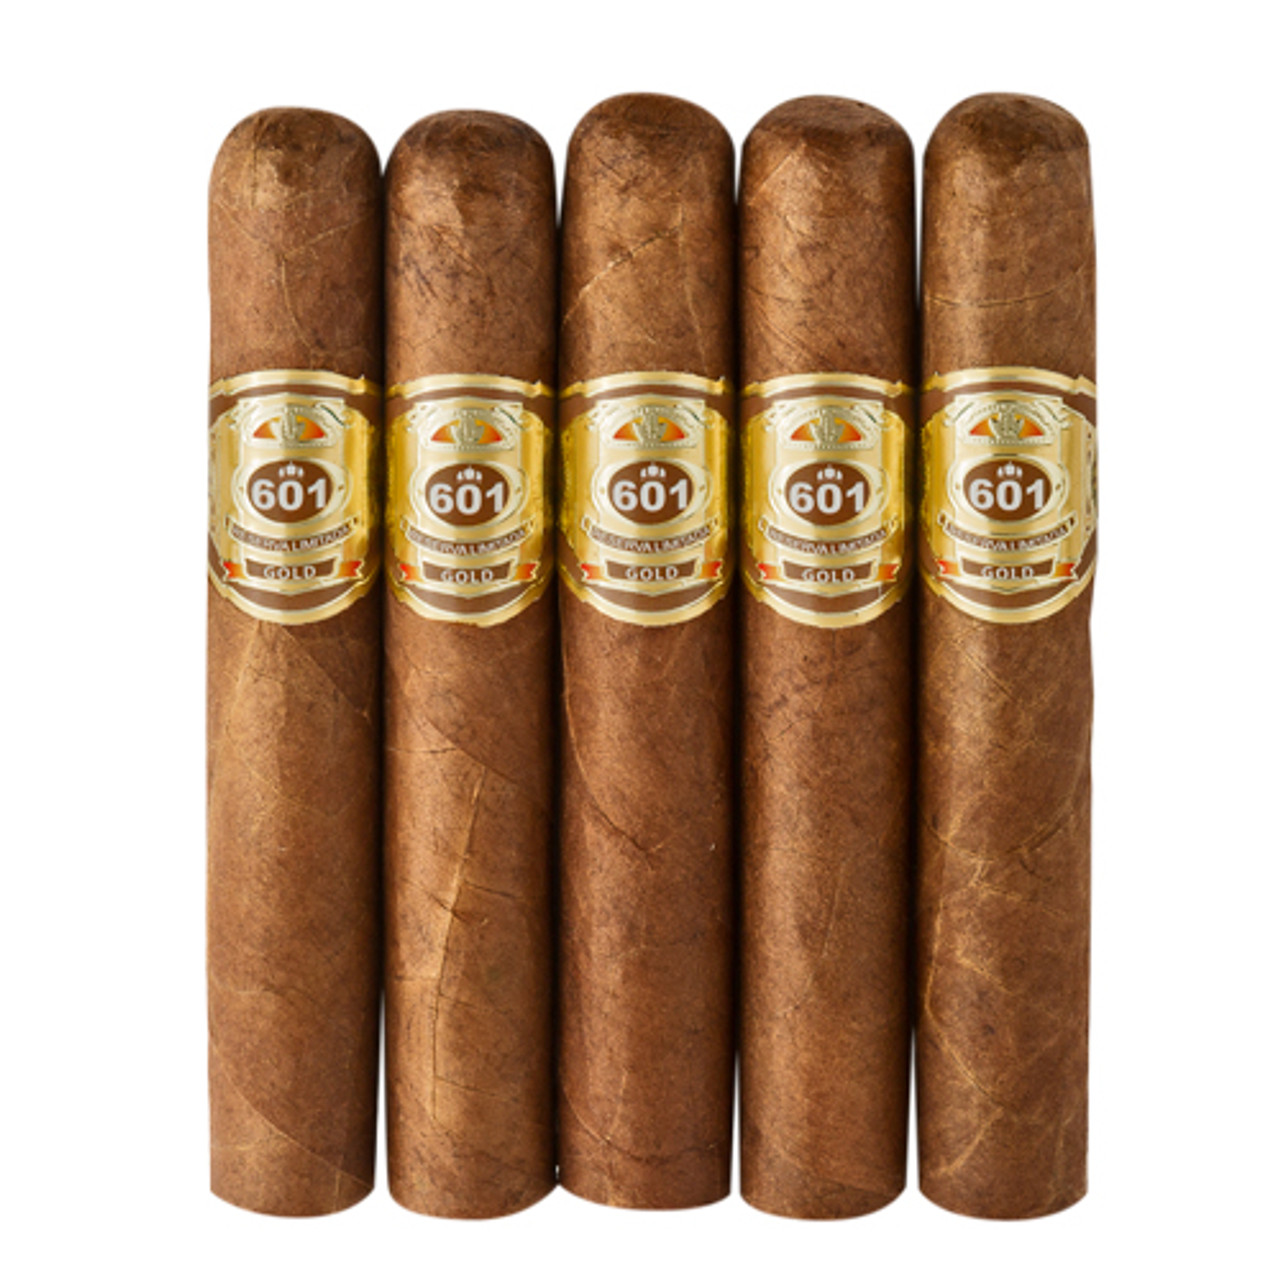 601 Gold Label Robusto Cigars - 5 x 50 (Pack of 5)